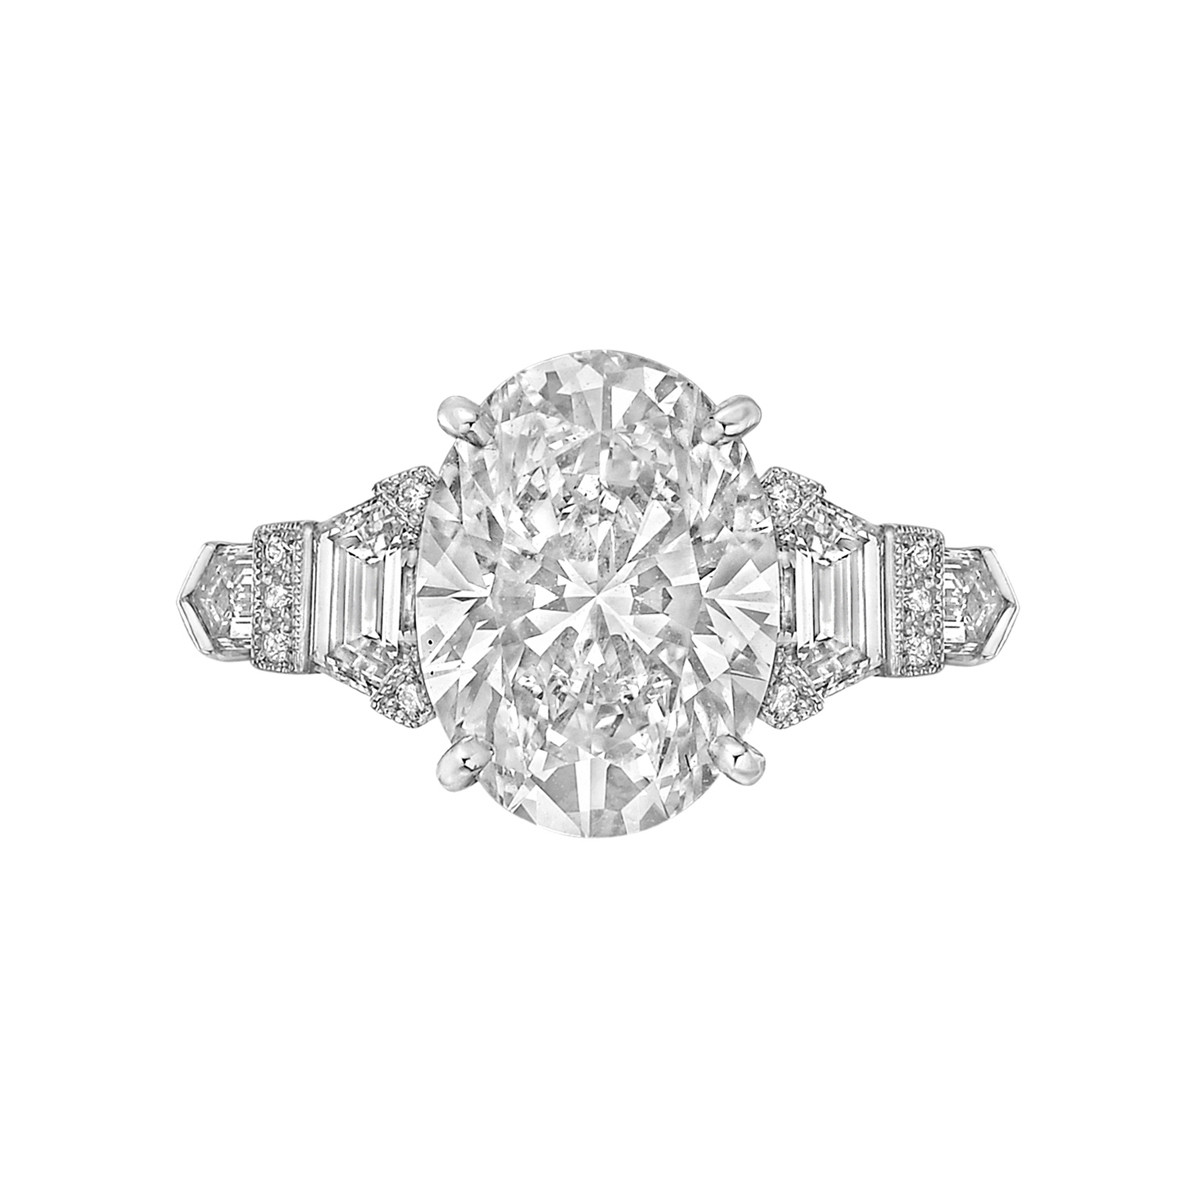 4.01 Carat Oval Brilliant Diamond Ring